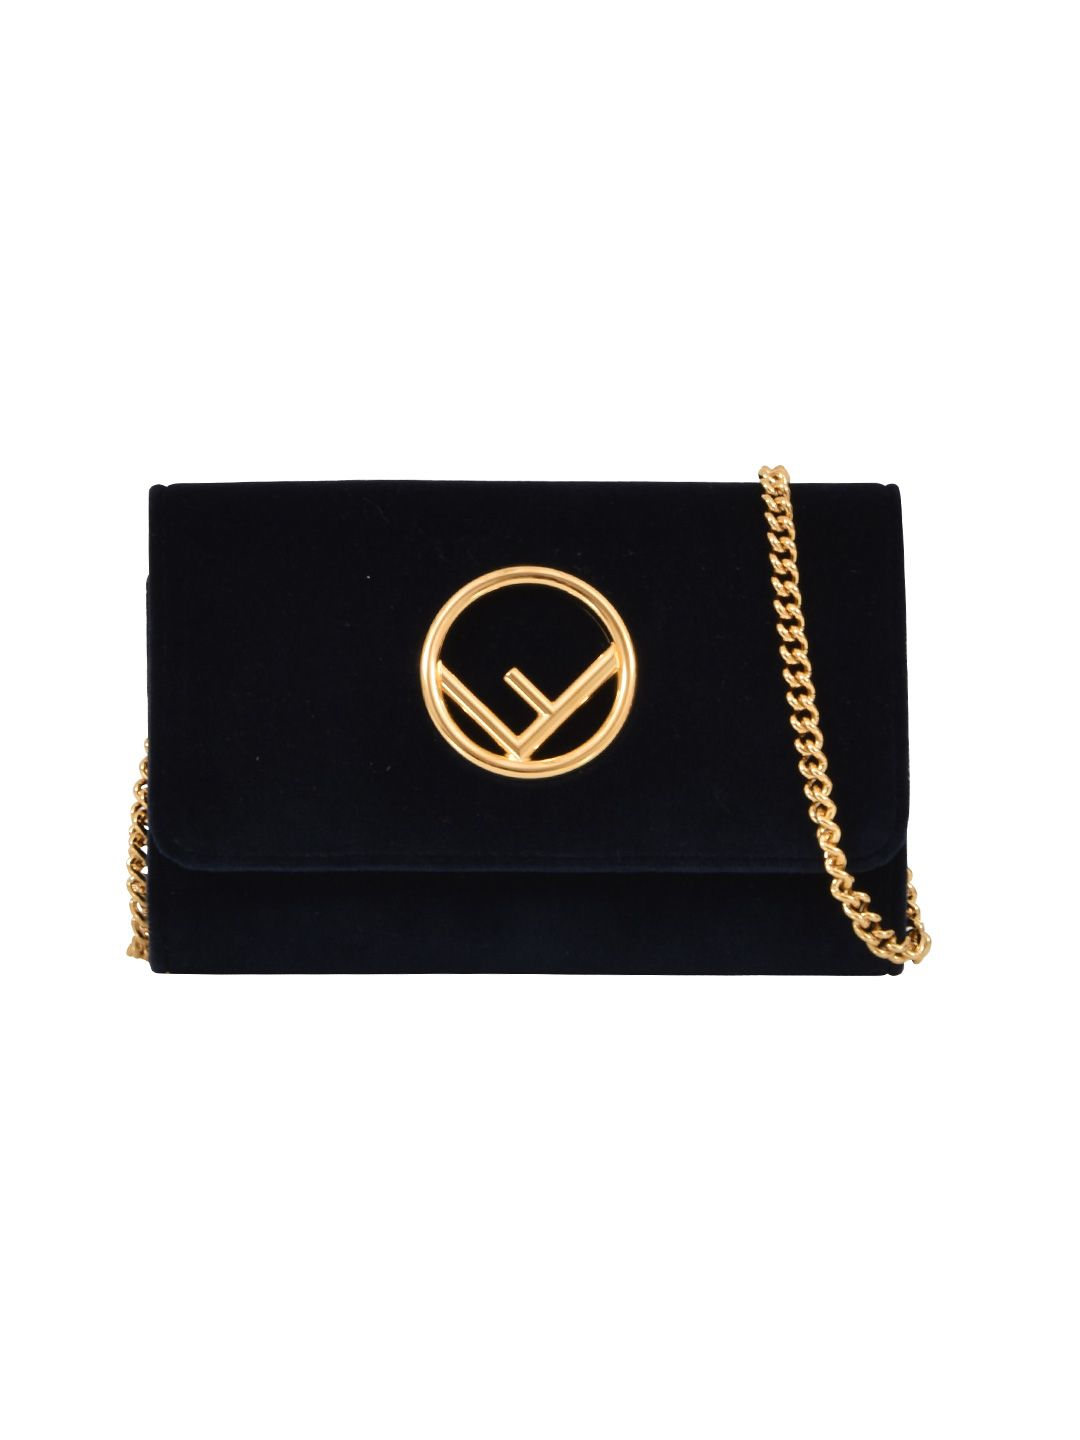 FENDI MINI-BAG VELVET FLAP